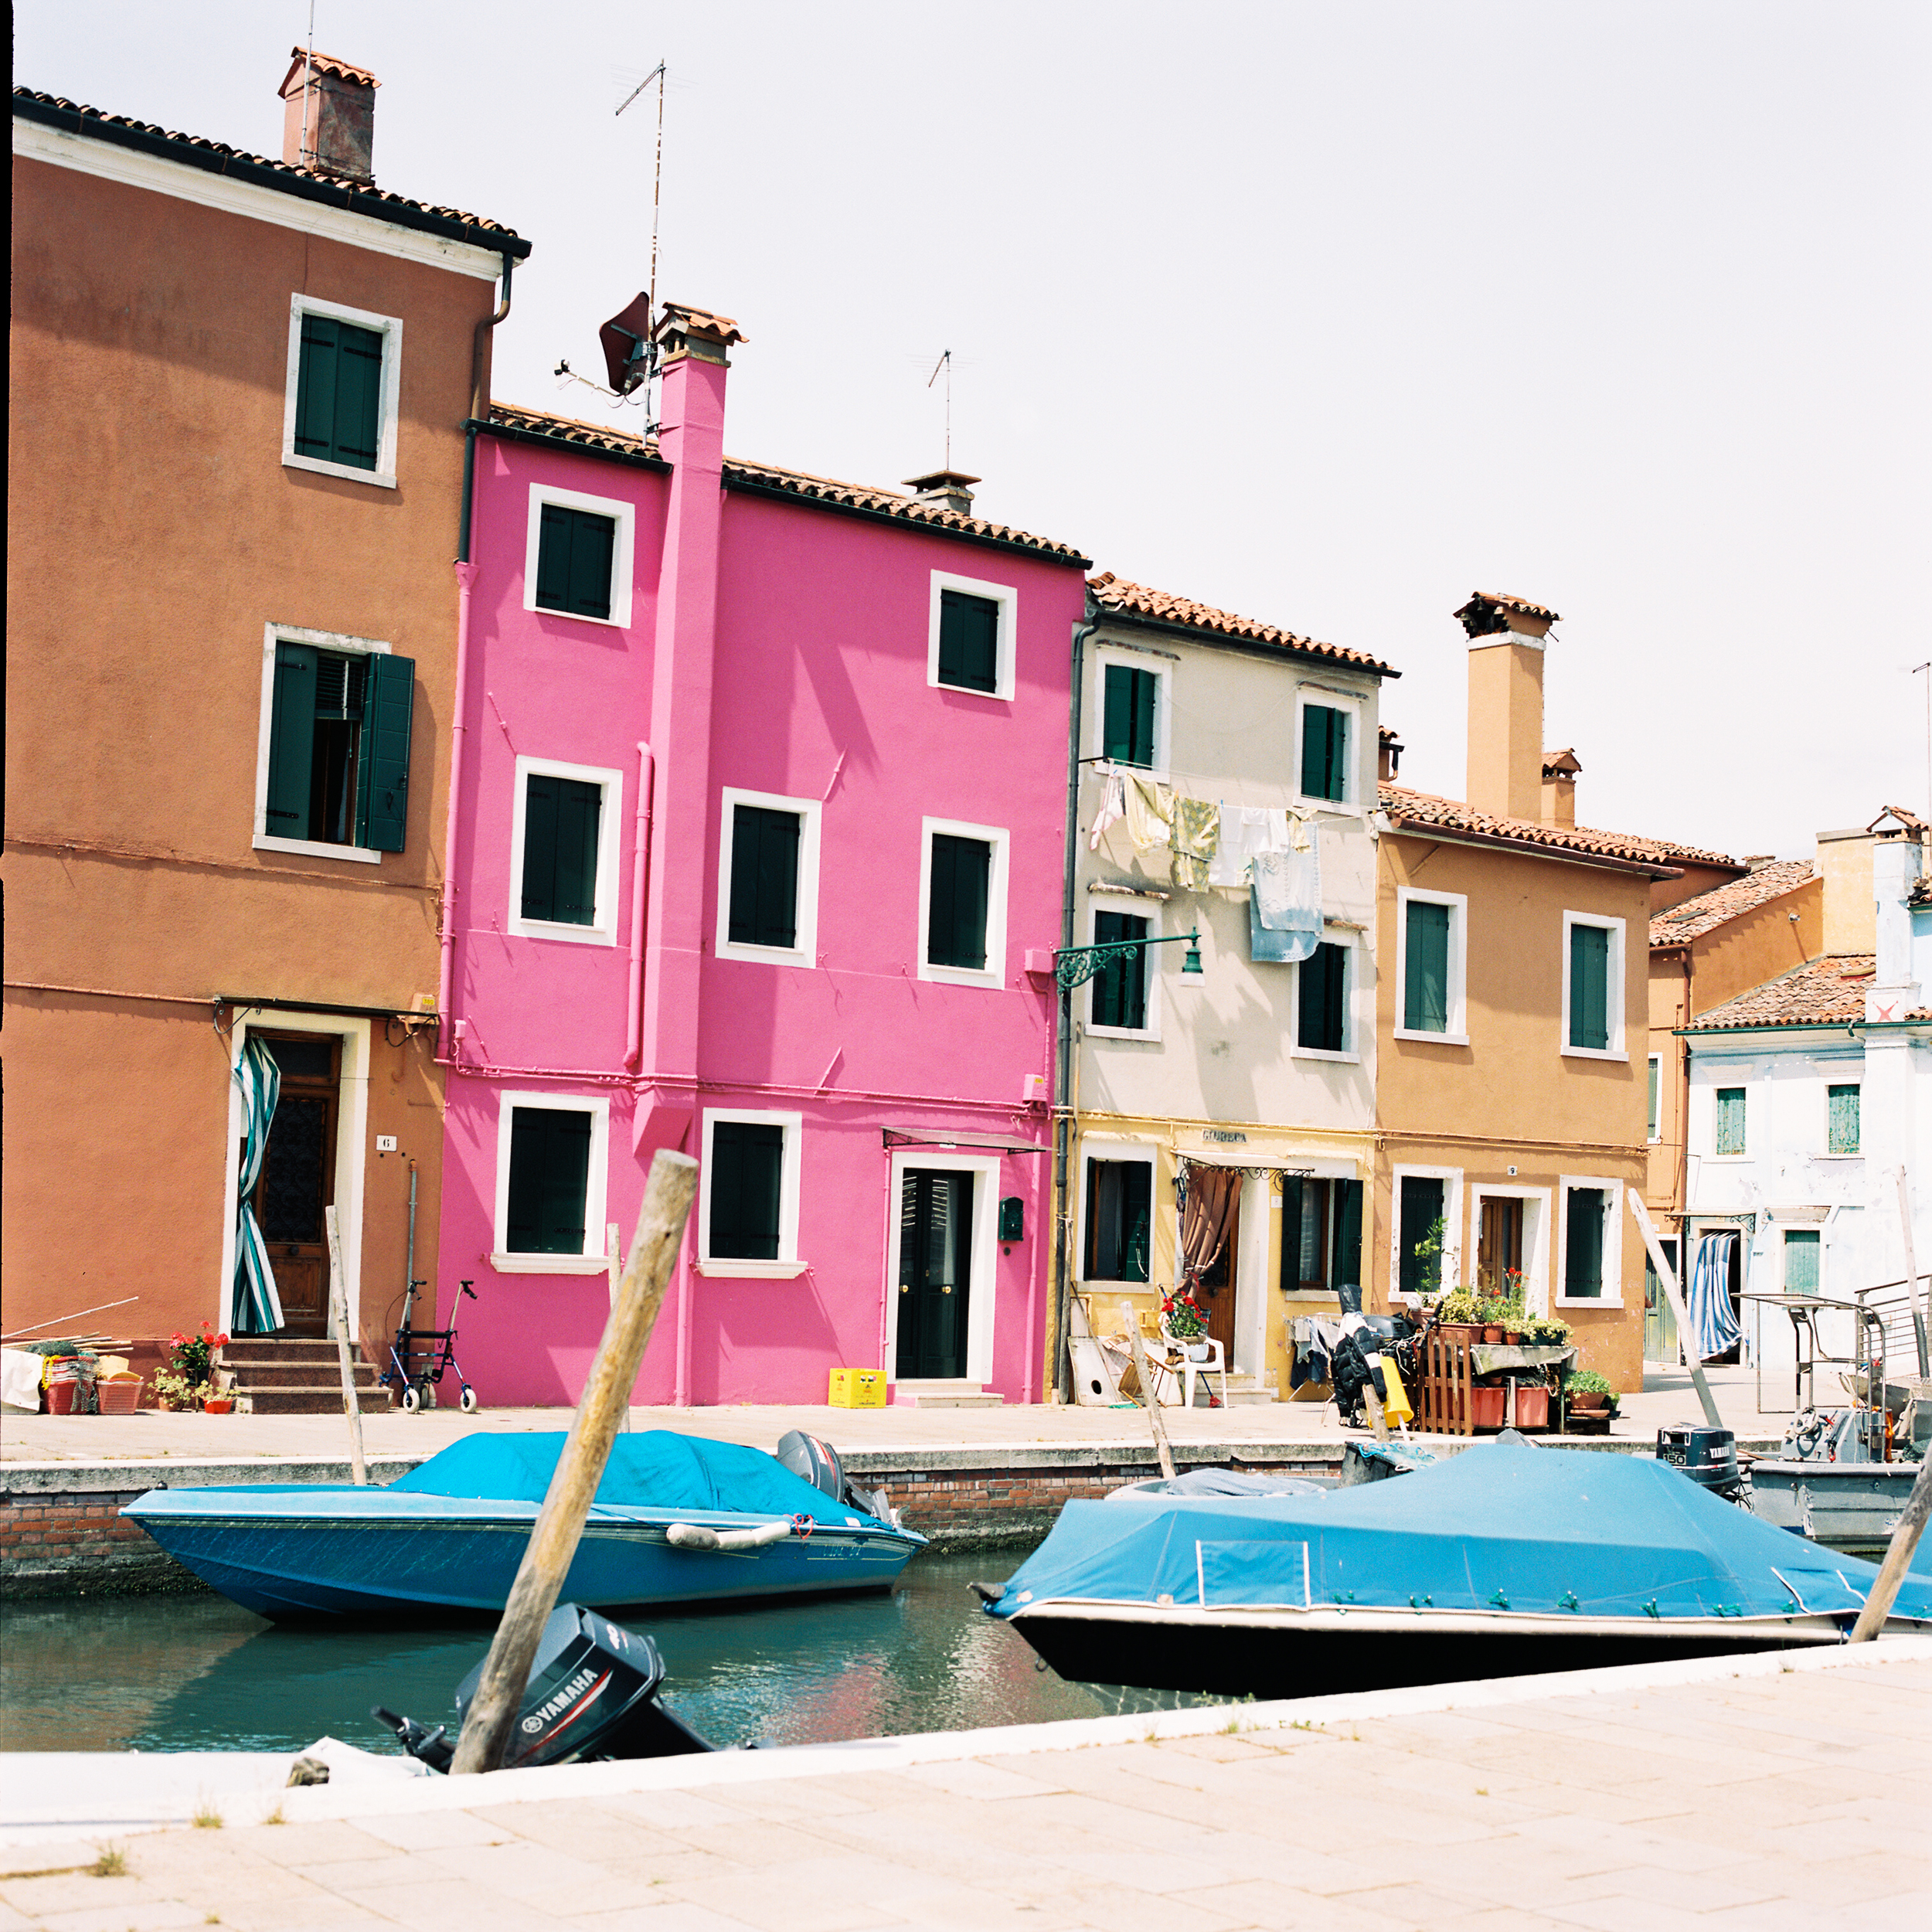 I could've hung around Burano alllll day long. The colored homes definitely lived up to all the hype.  We snacked on some delicious cherries and grapes that we purchased from the prettiest little fruit market.